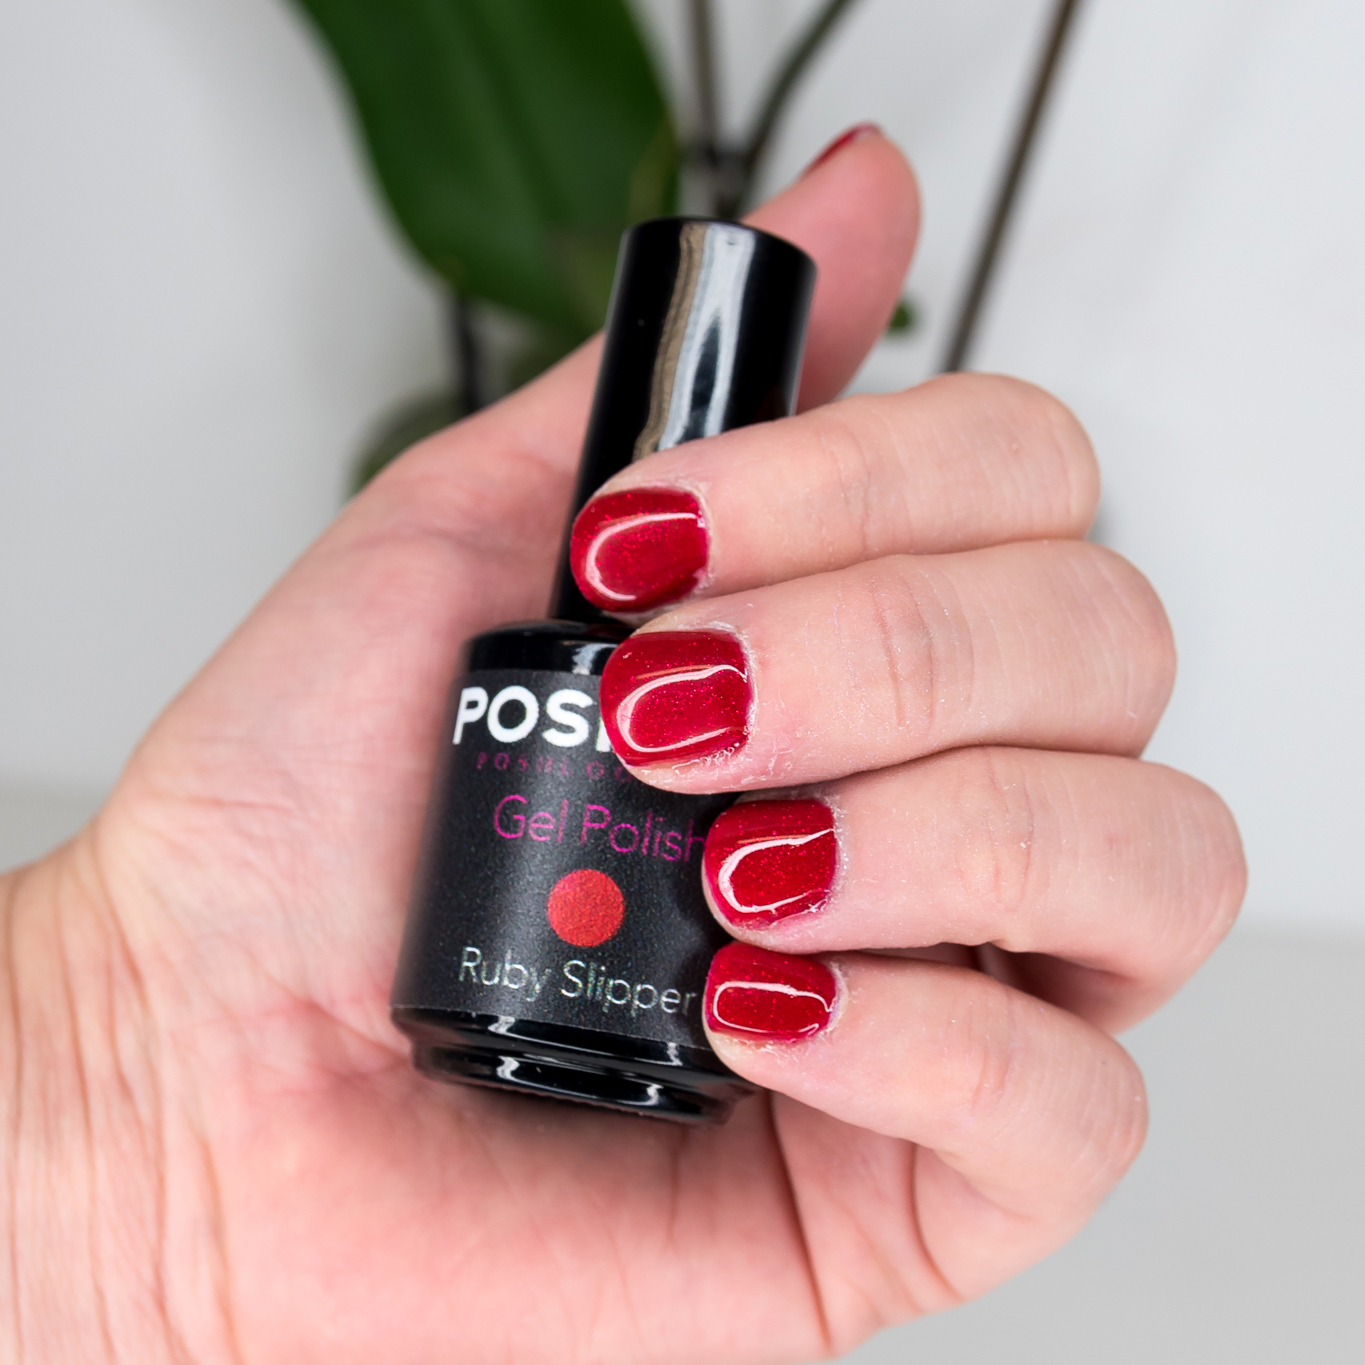 Gel Polish – Ruby Slipper. Home / Gel Polishes / Gel Polish – Ruby Slipper